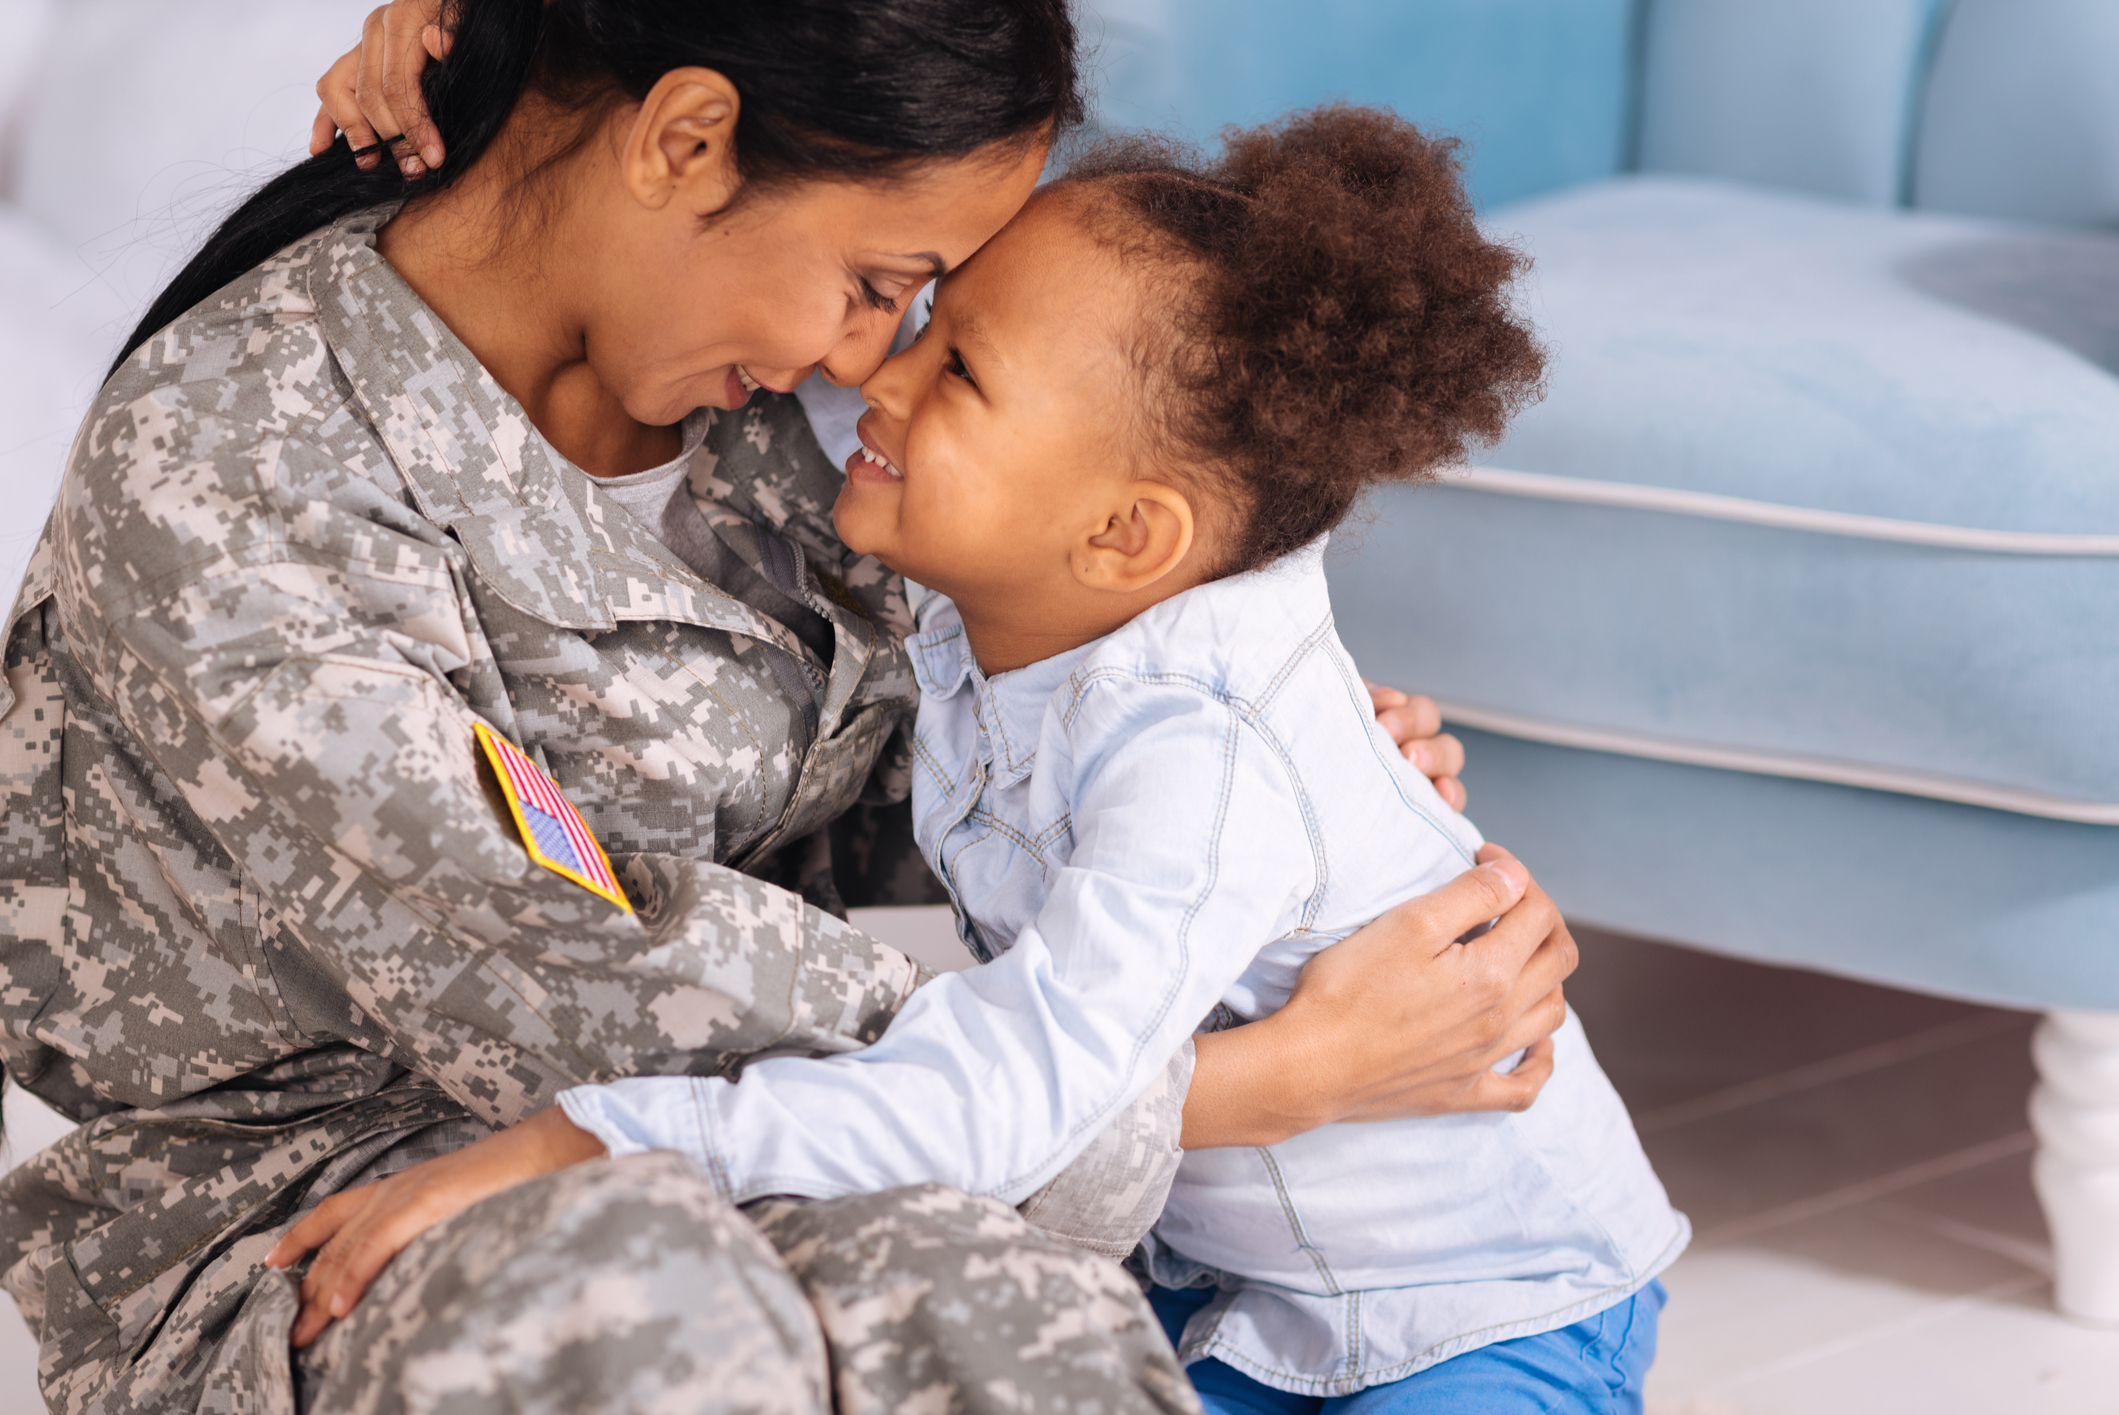 Military Divorce - Military divorce has its own particular challenges. Although the general procedure is the same as for civilians, there are some differences starting from service of papers on a deployed spouse to delays made possible by the Servicemembers Civil Relief Act (SCRA). The military benefits and retirement division require understanding and expertise. We have handled numerous military divorces with complex issues of PTSD, serial deployments, etc.